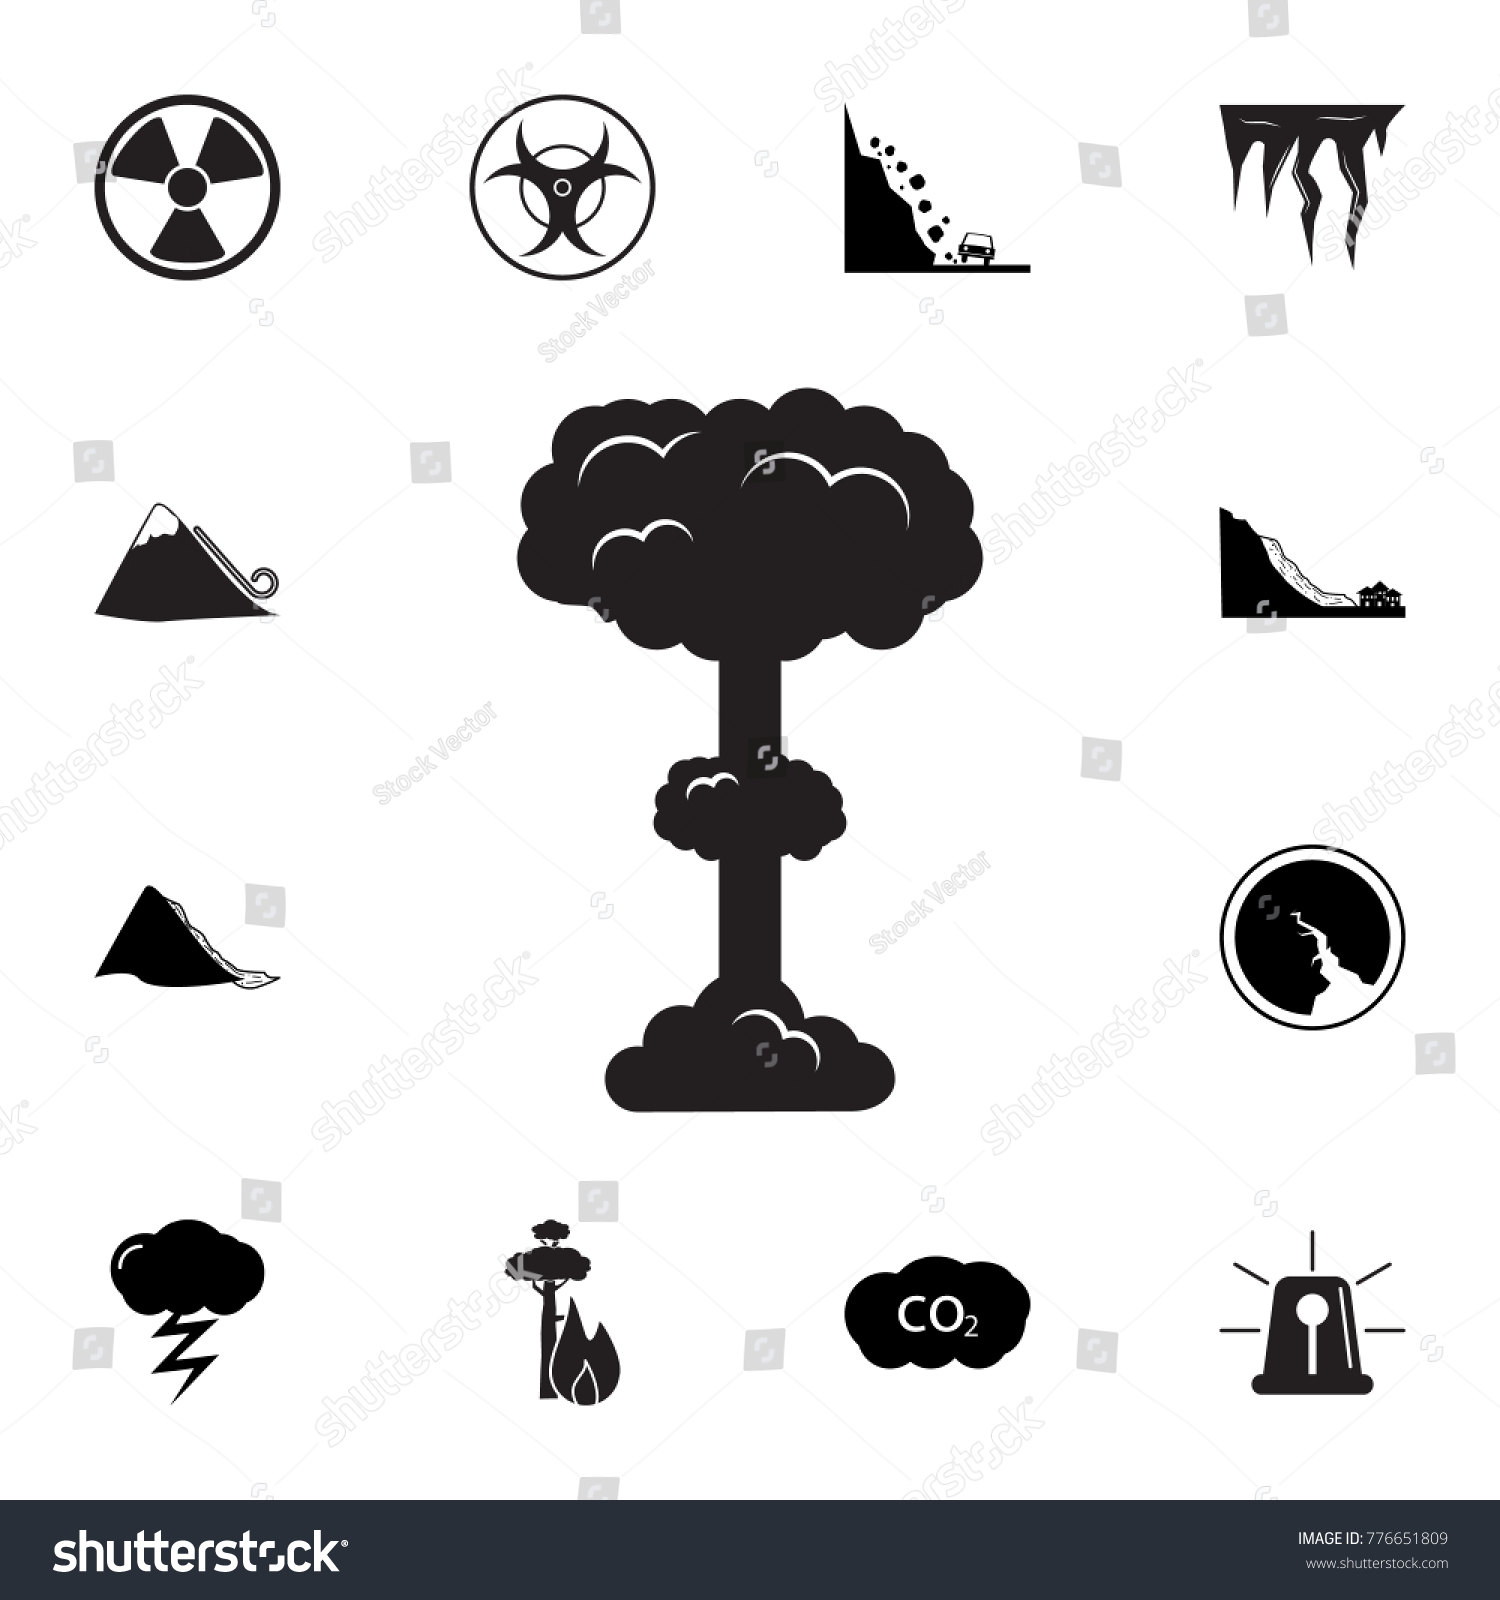 Nuclear explosion icon set natural disasters stock vector nuclear explosion icon set of natural disasters icon signs and symbols collection simple biocorpaavc Gallery